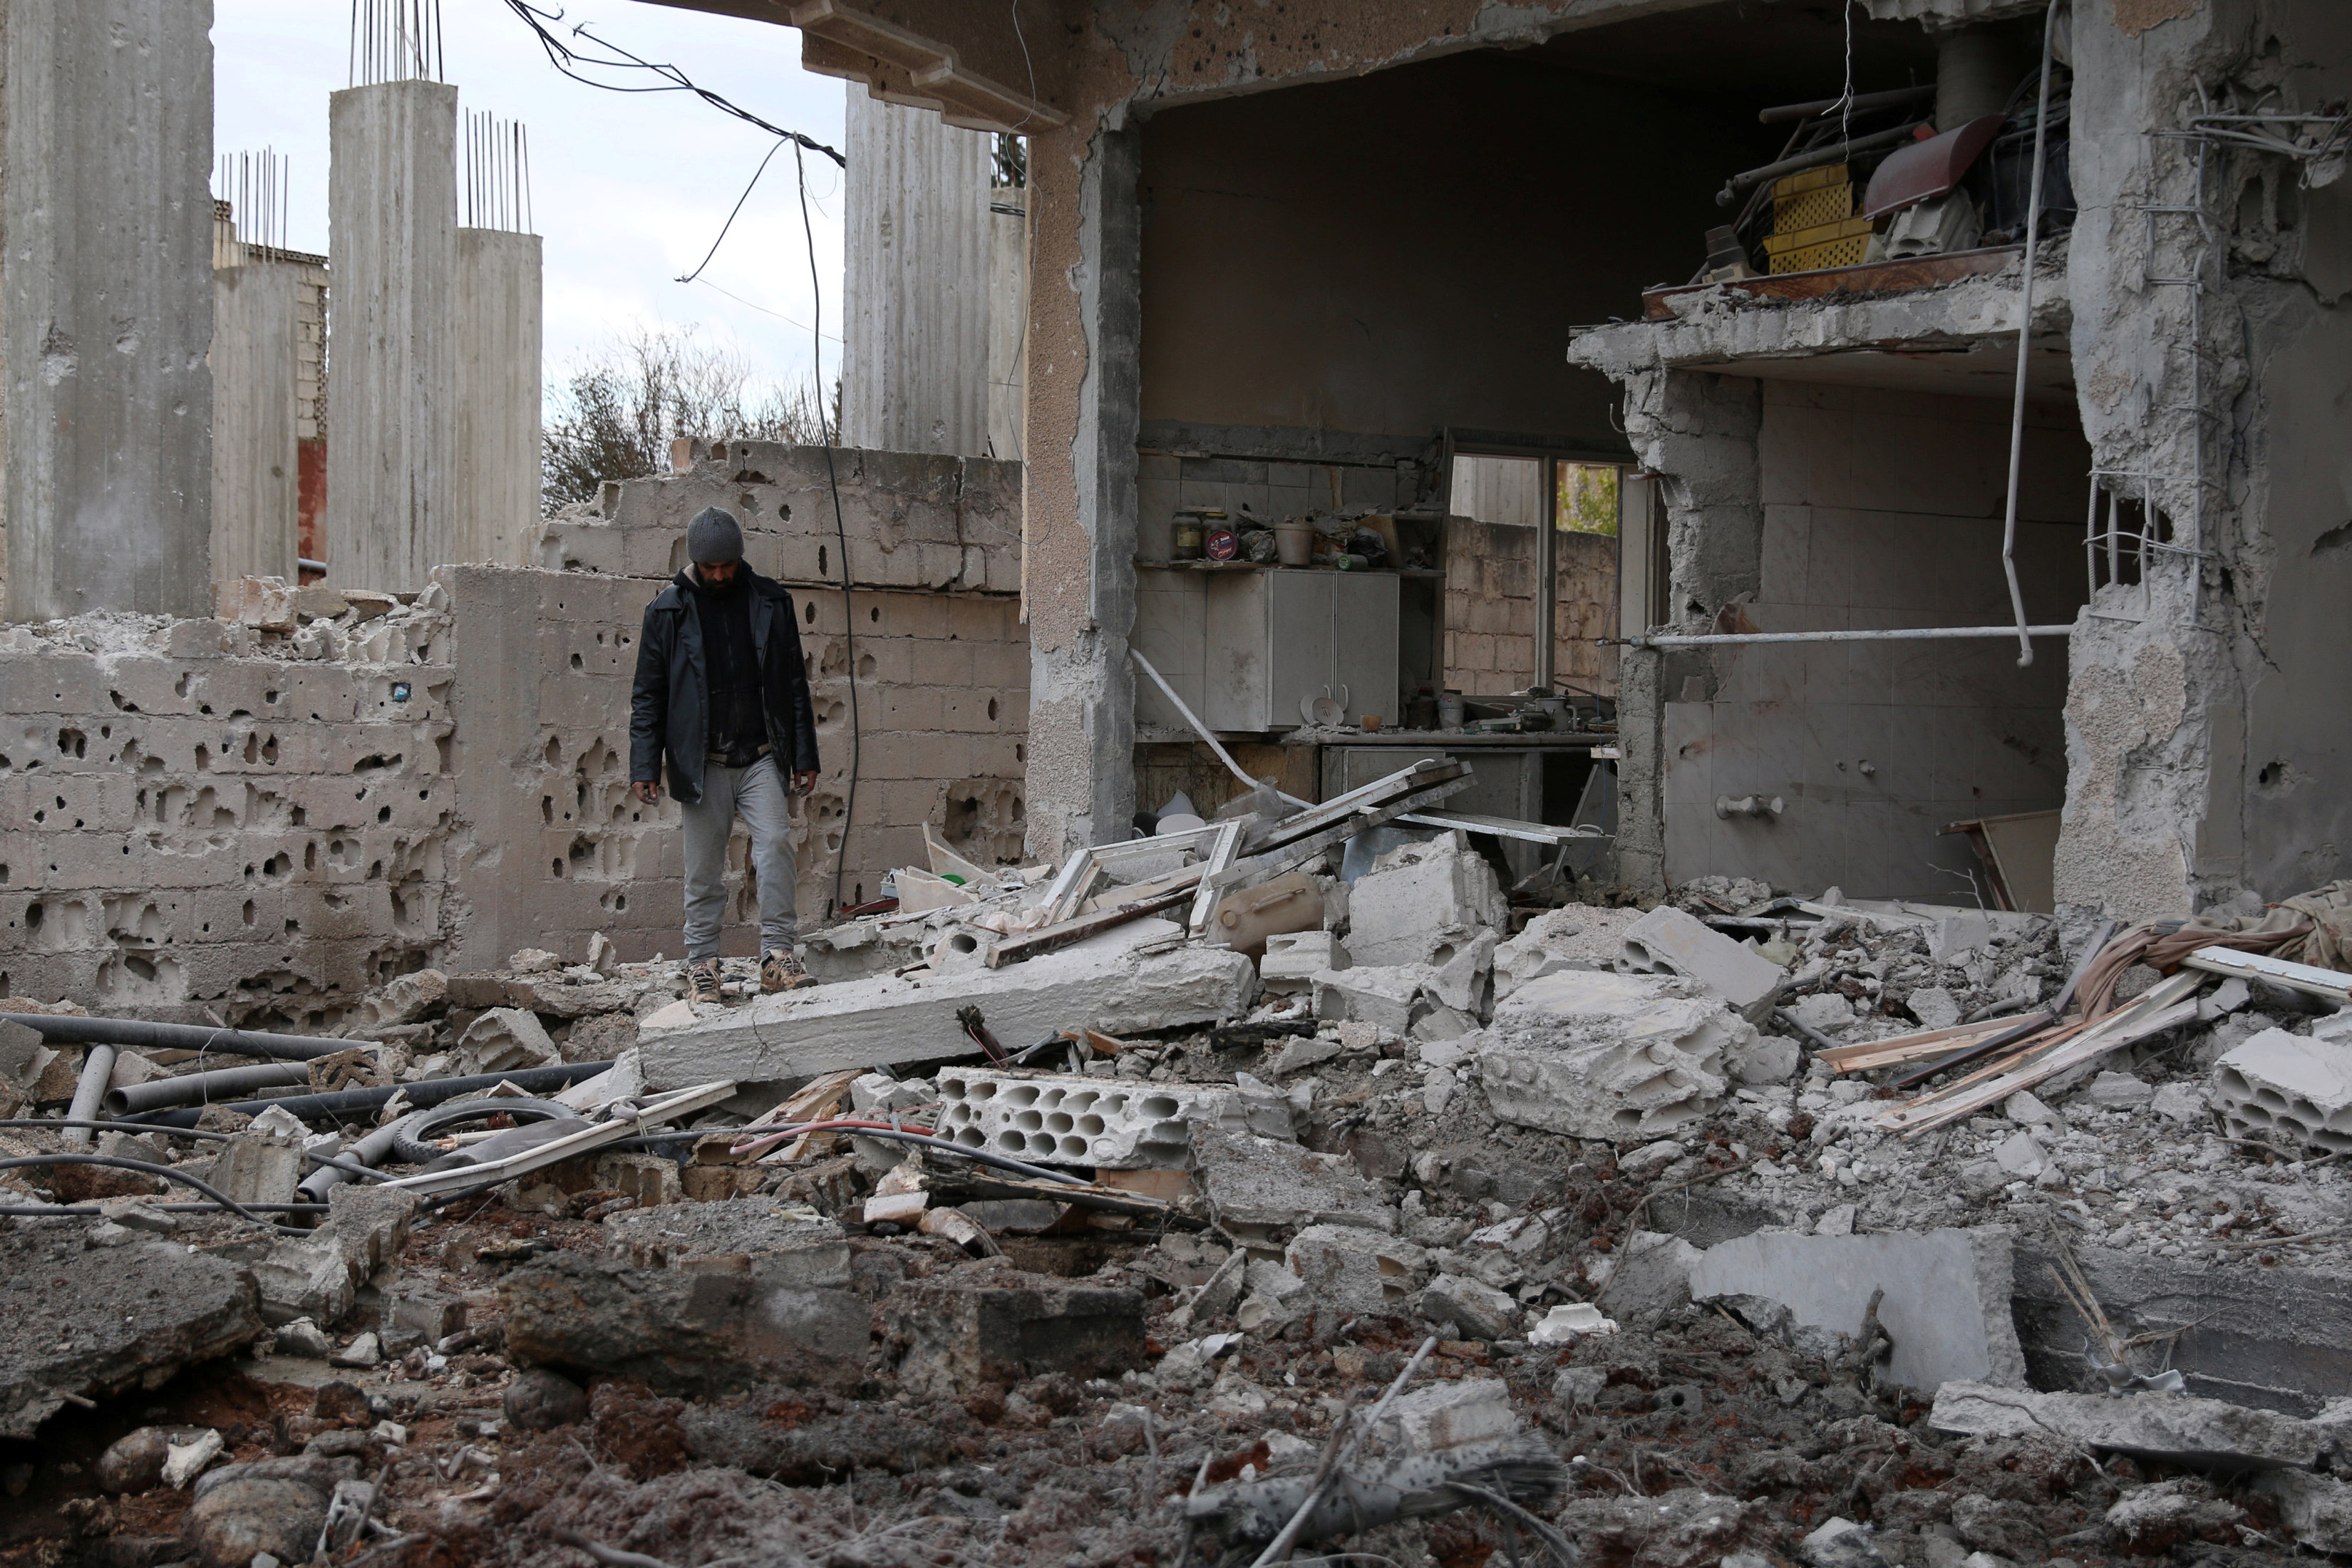 man inspects damaged house after airstrike in Syria